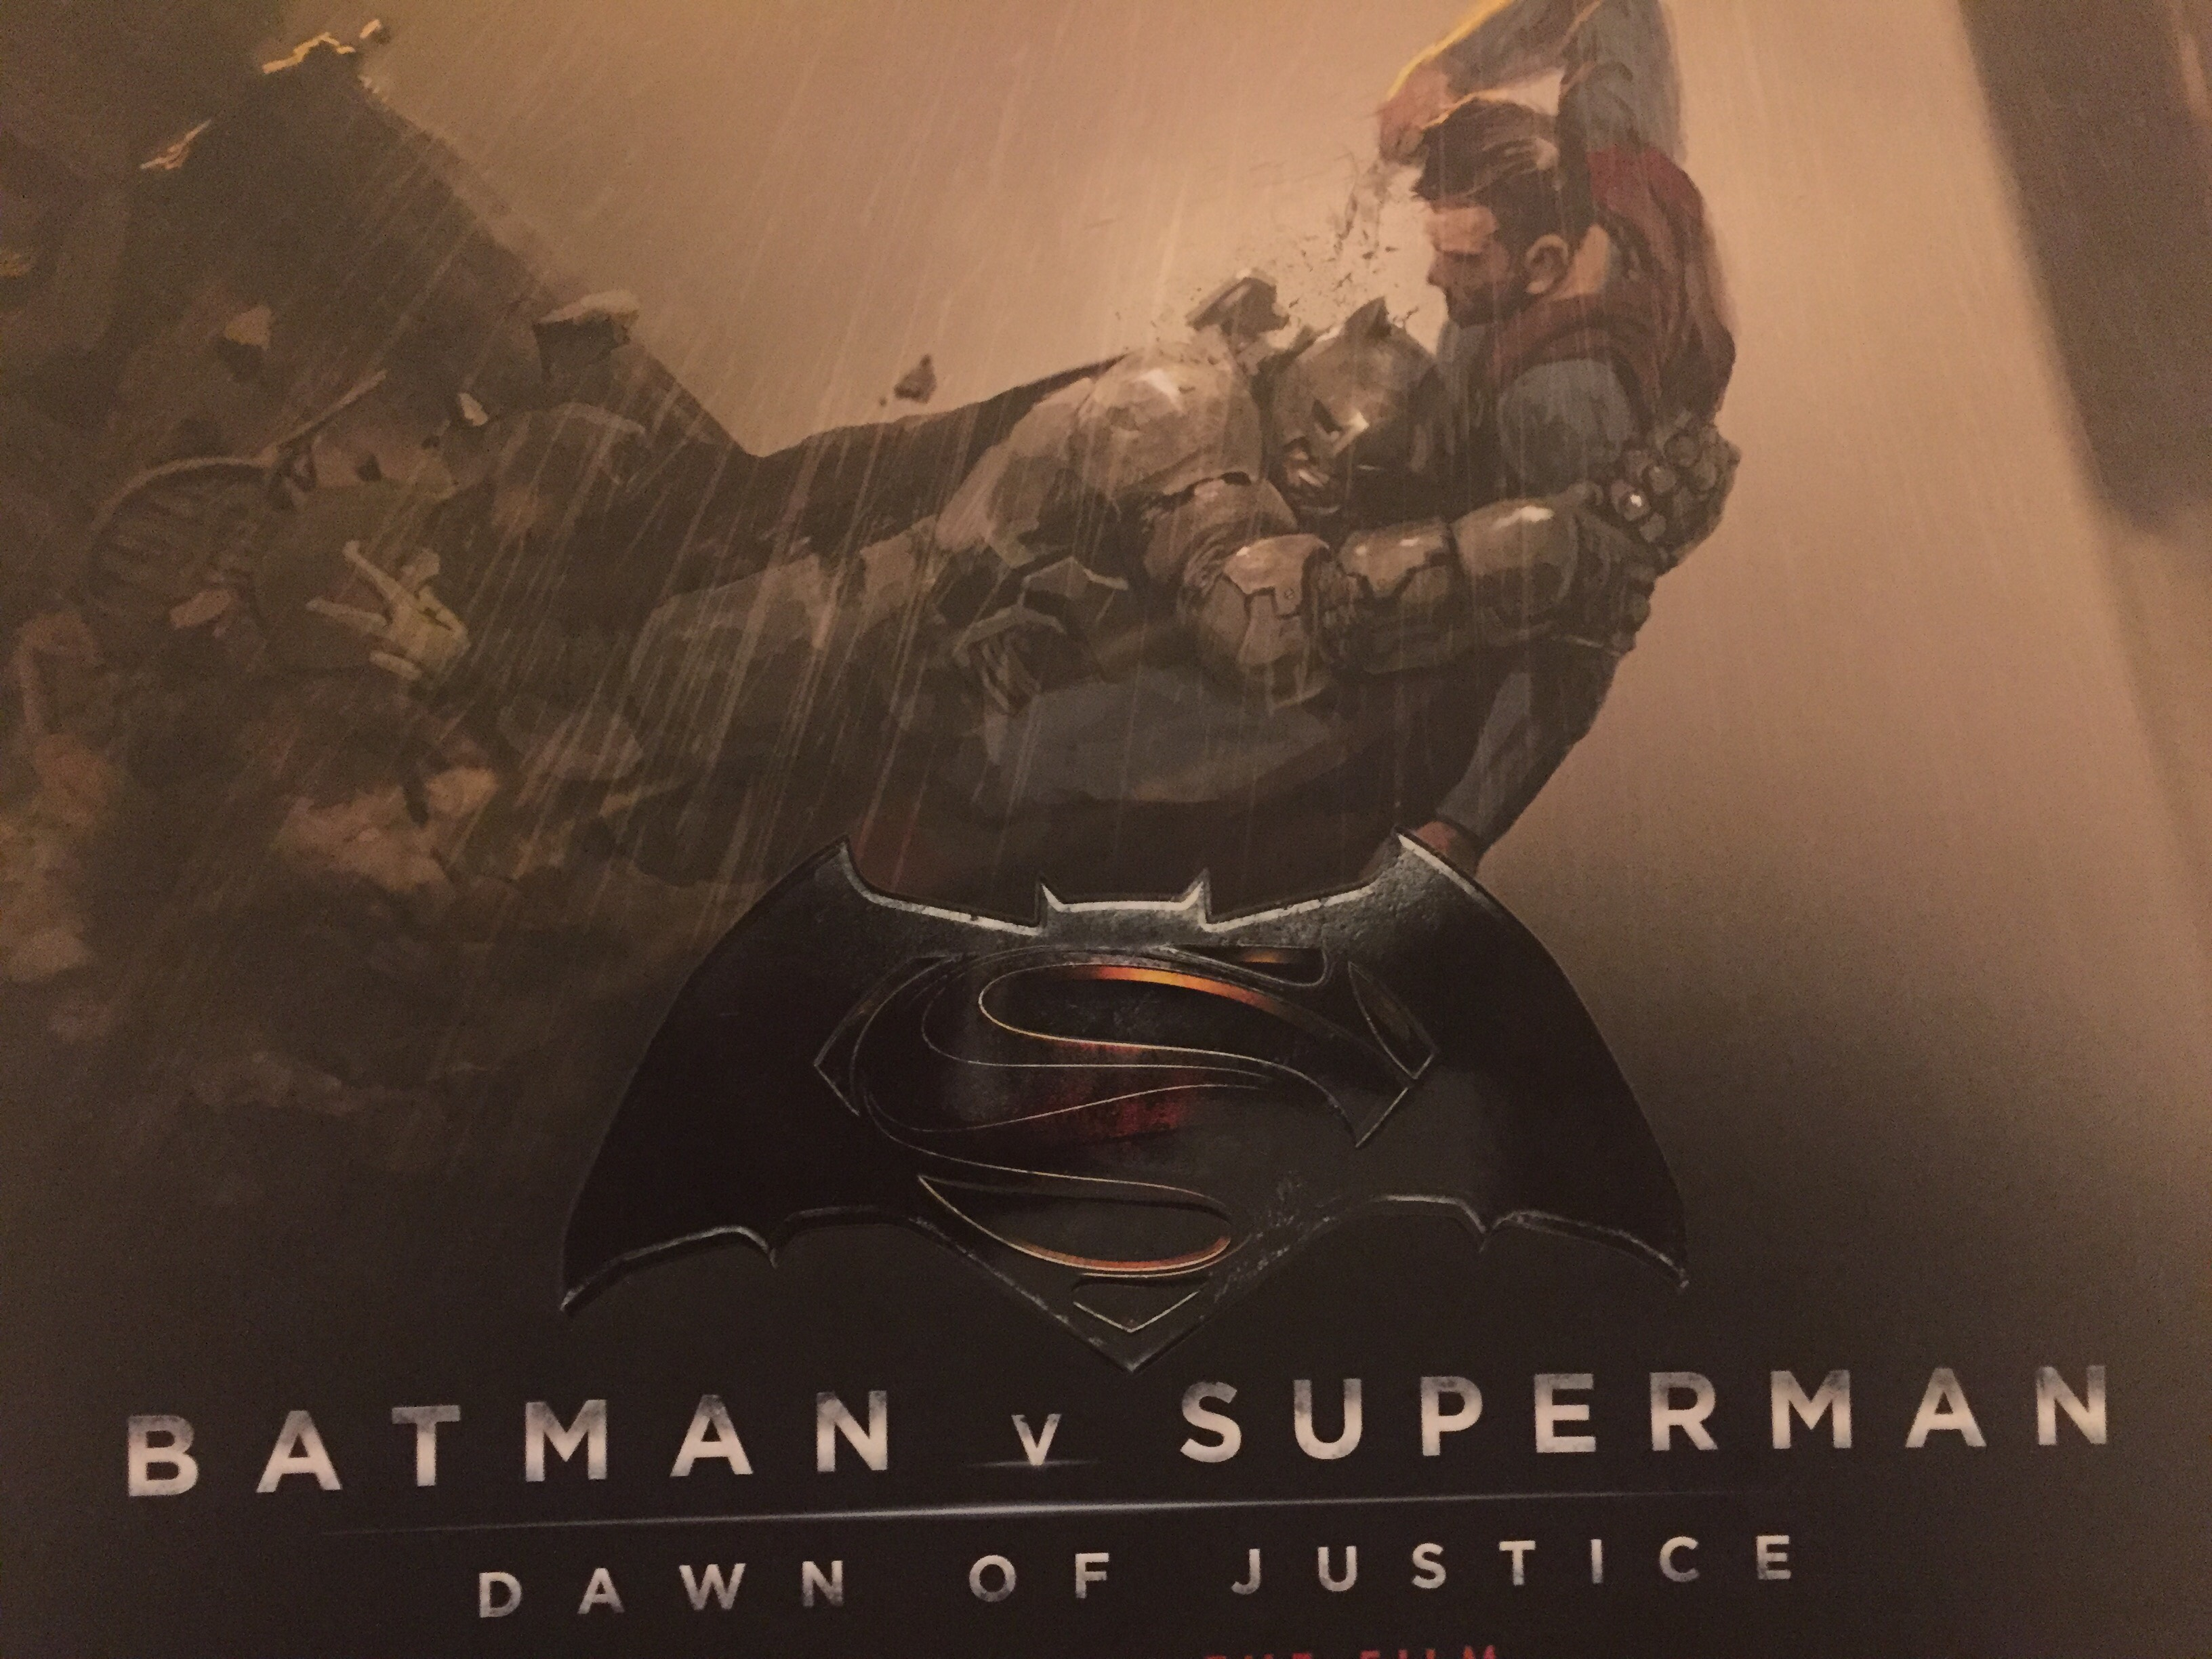 'Batman v Superman: Dawn of Justice: The Art of the Film' Review